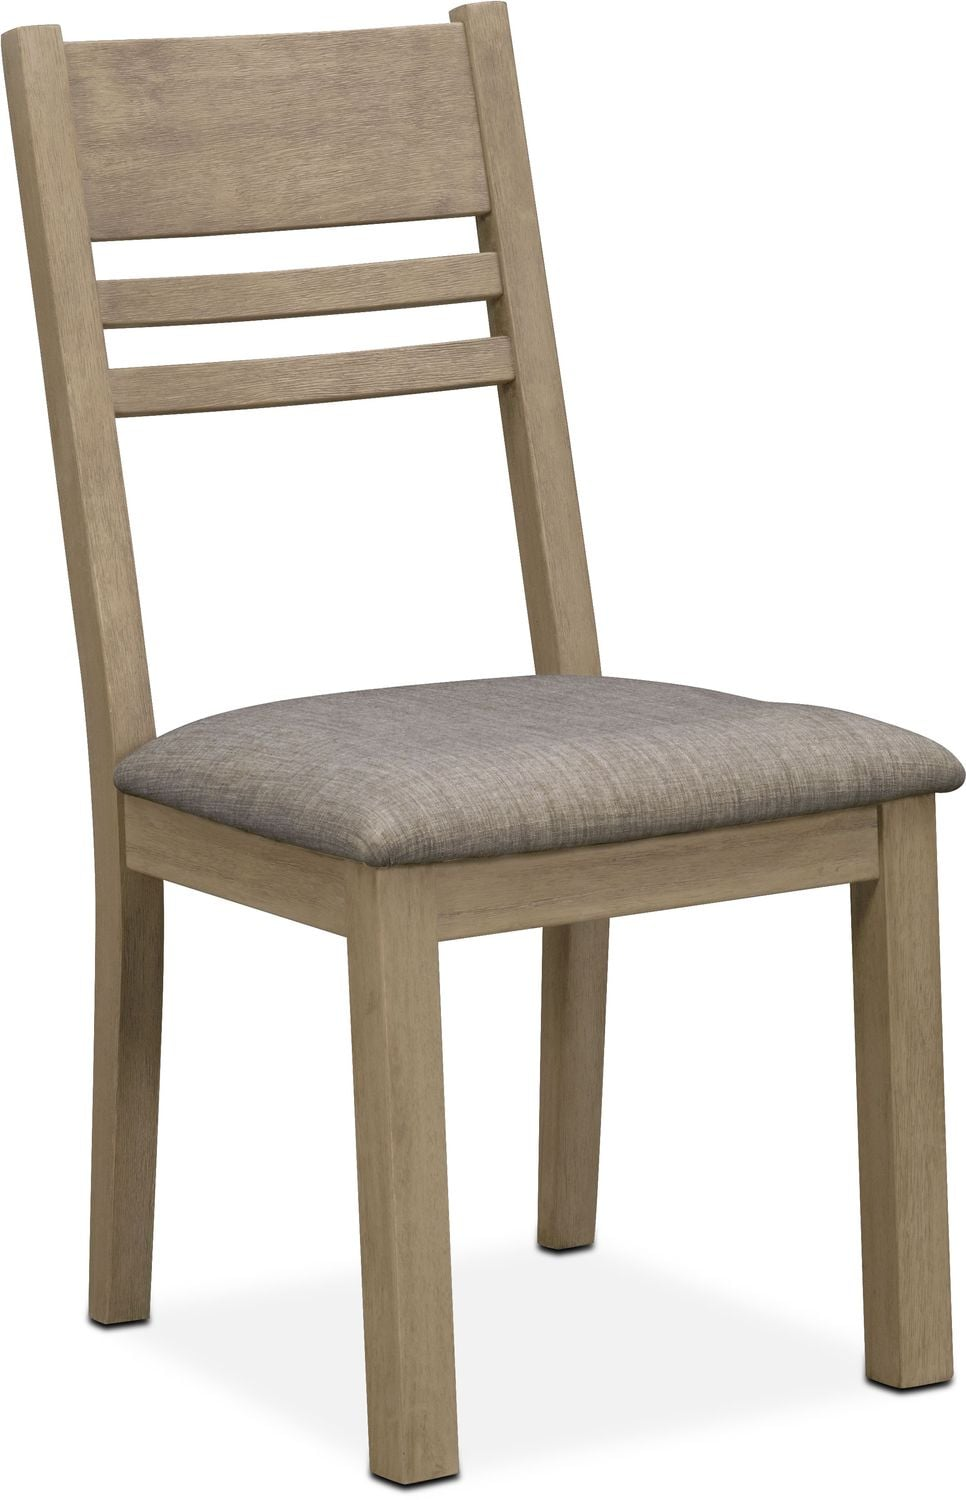 Tribeca Side Chair - Gray